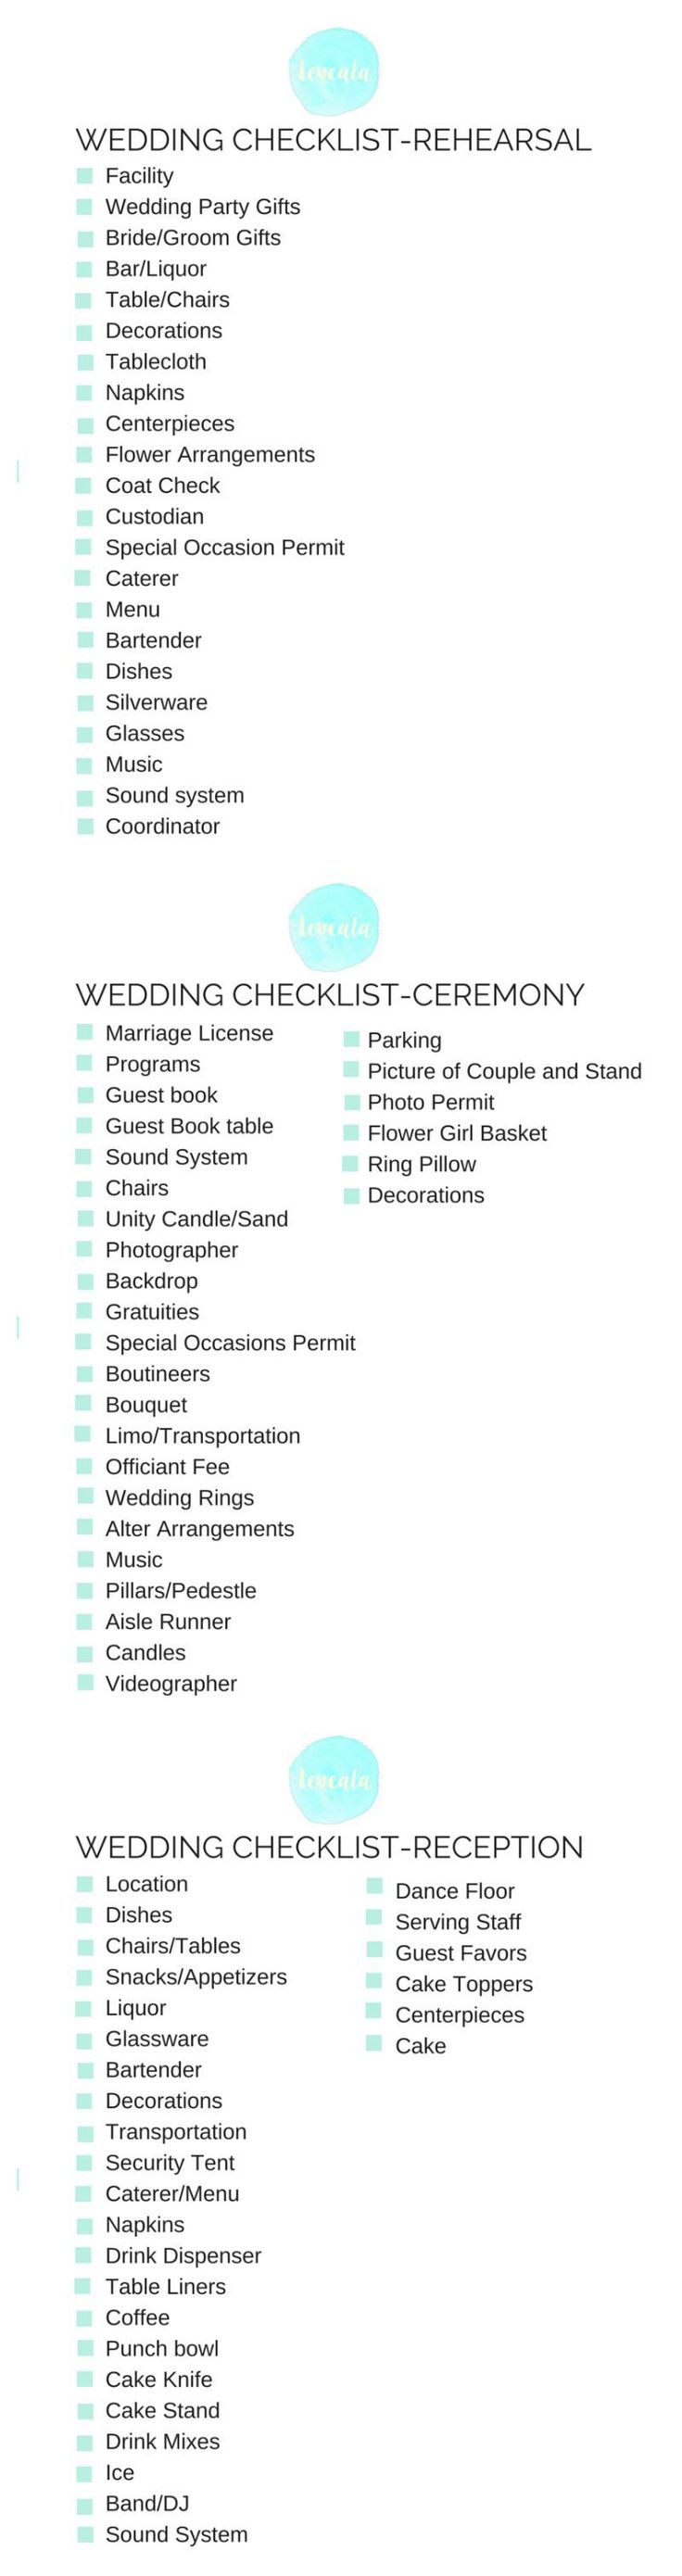 Best 25 Printable wedding planning checklist ideas on Pinterest